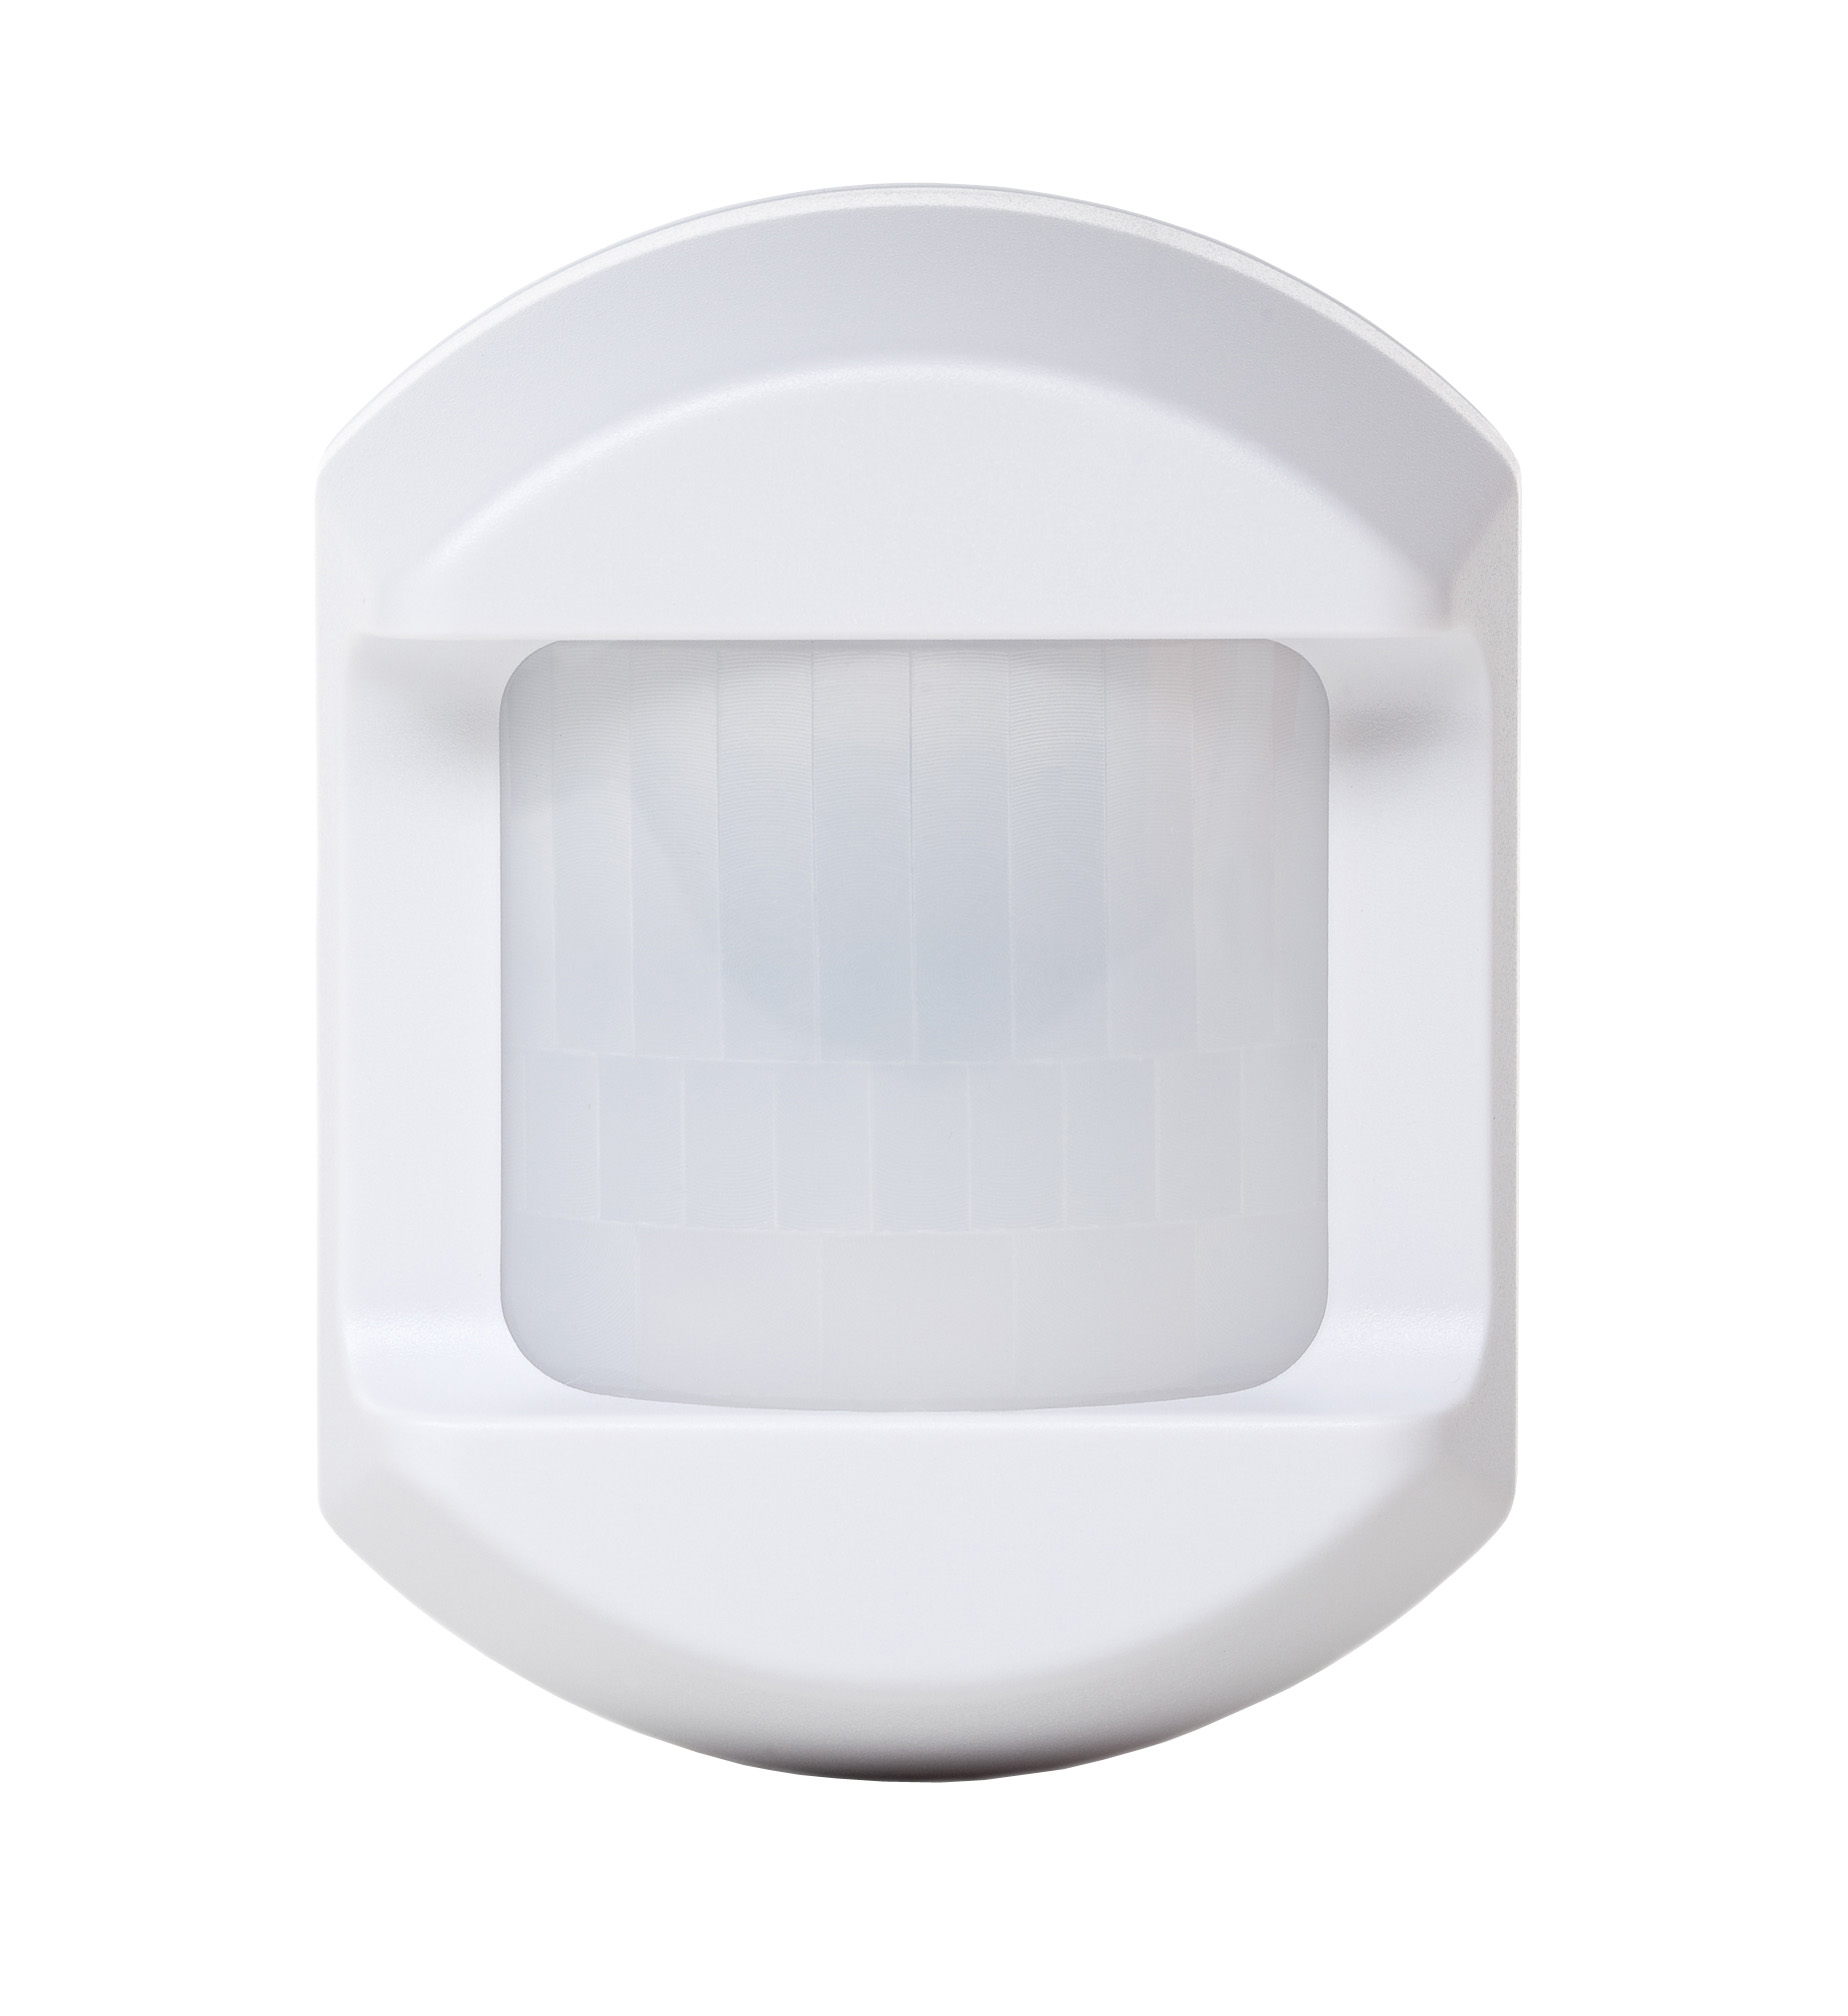 Motion detector with pet immune settings